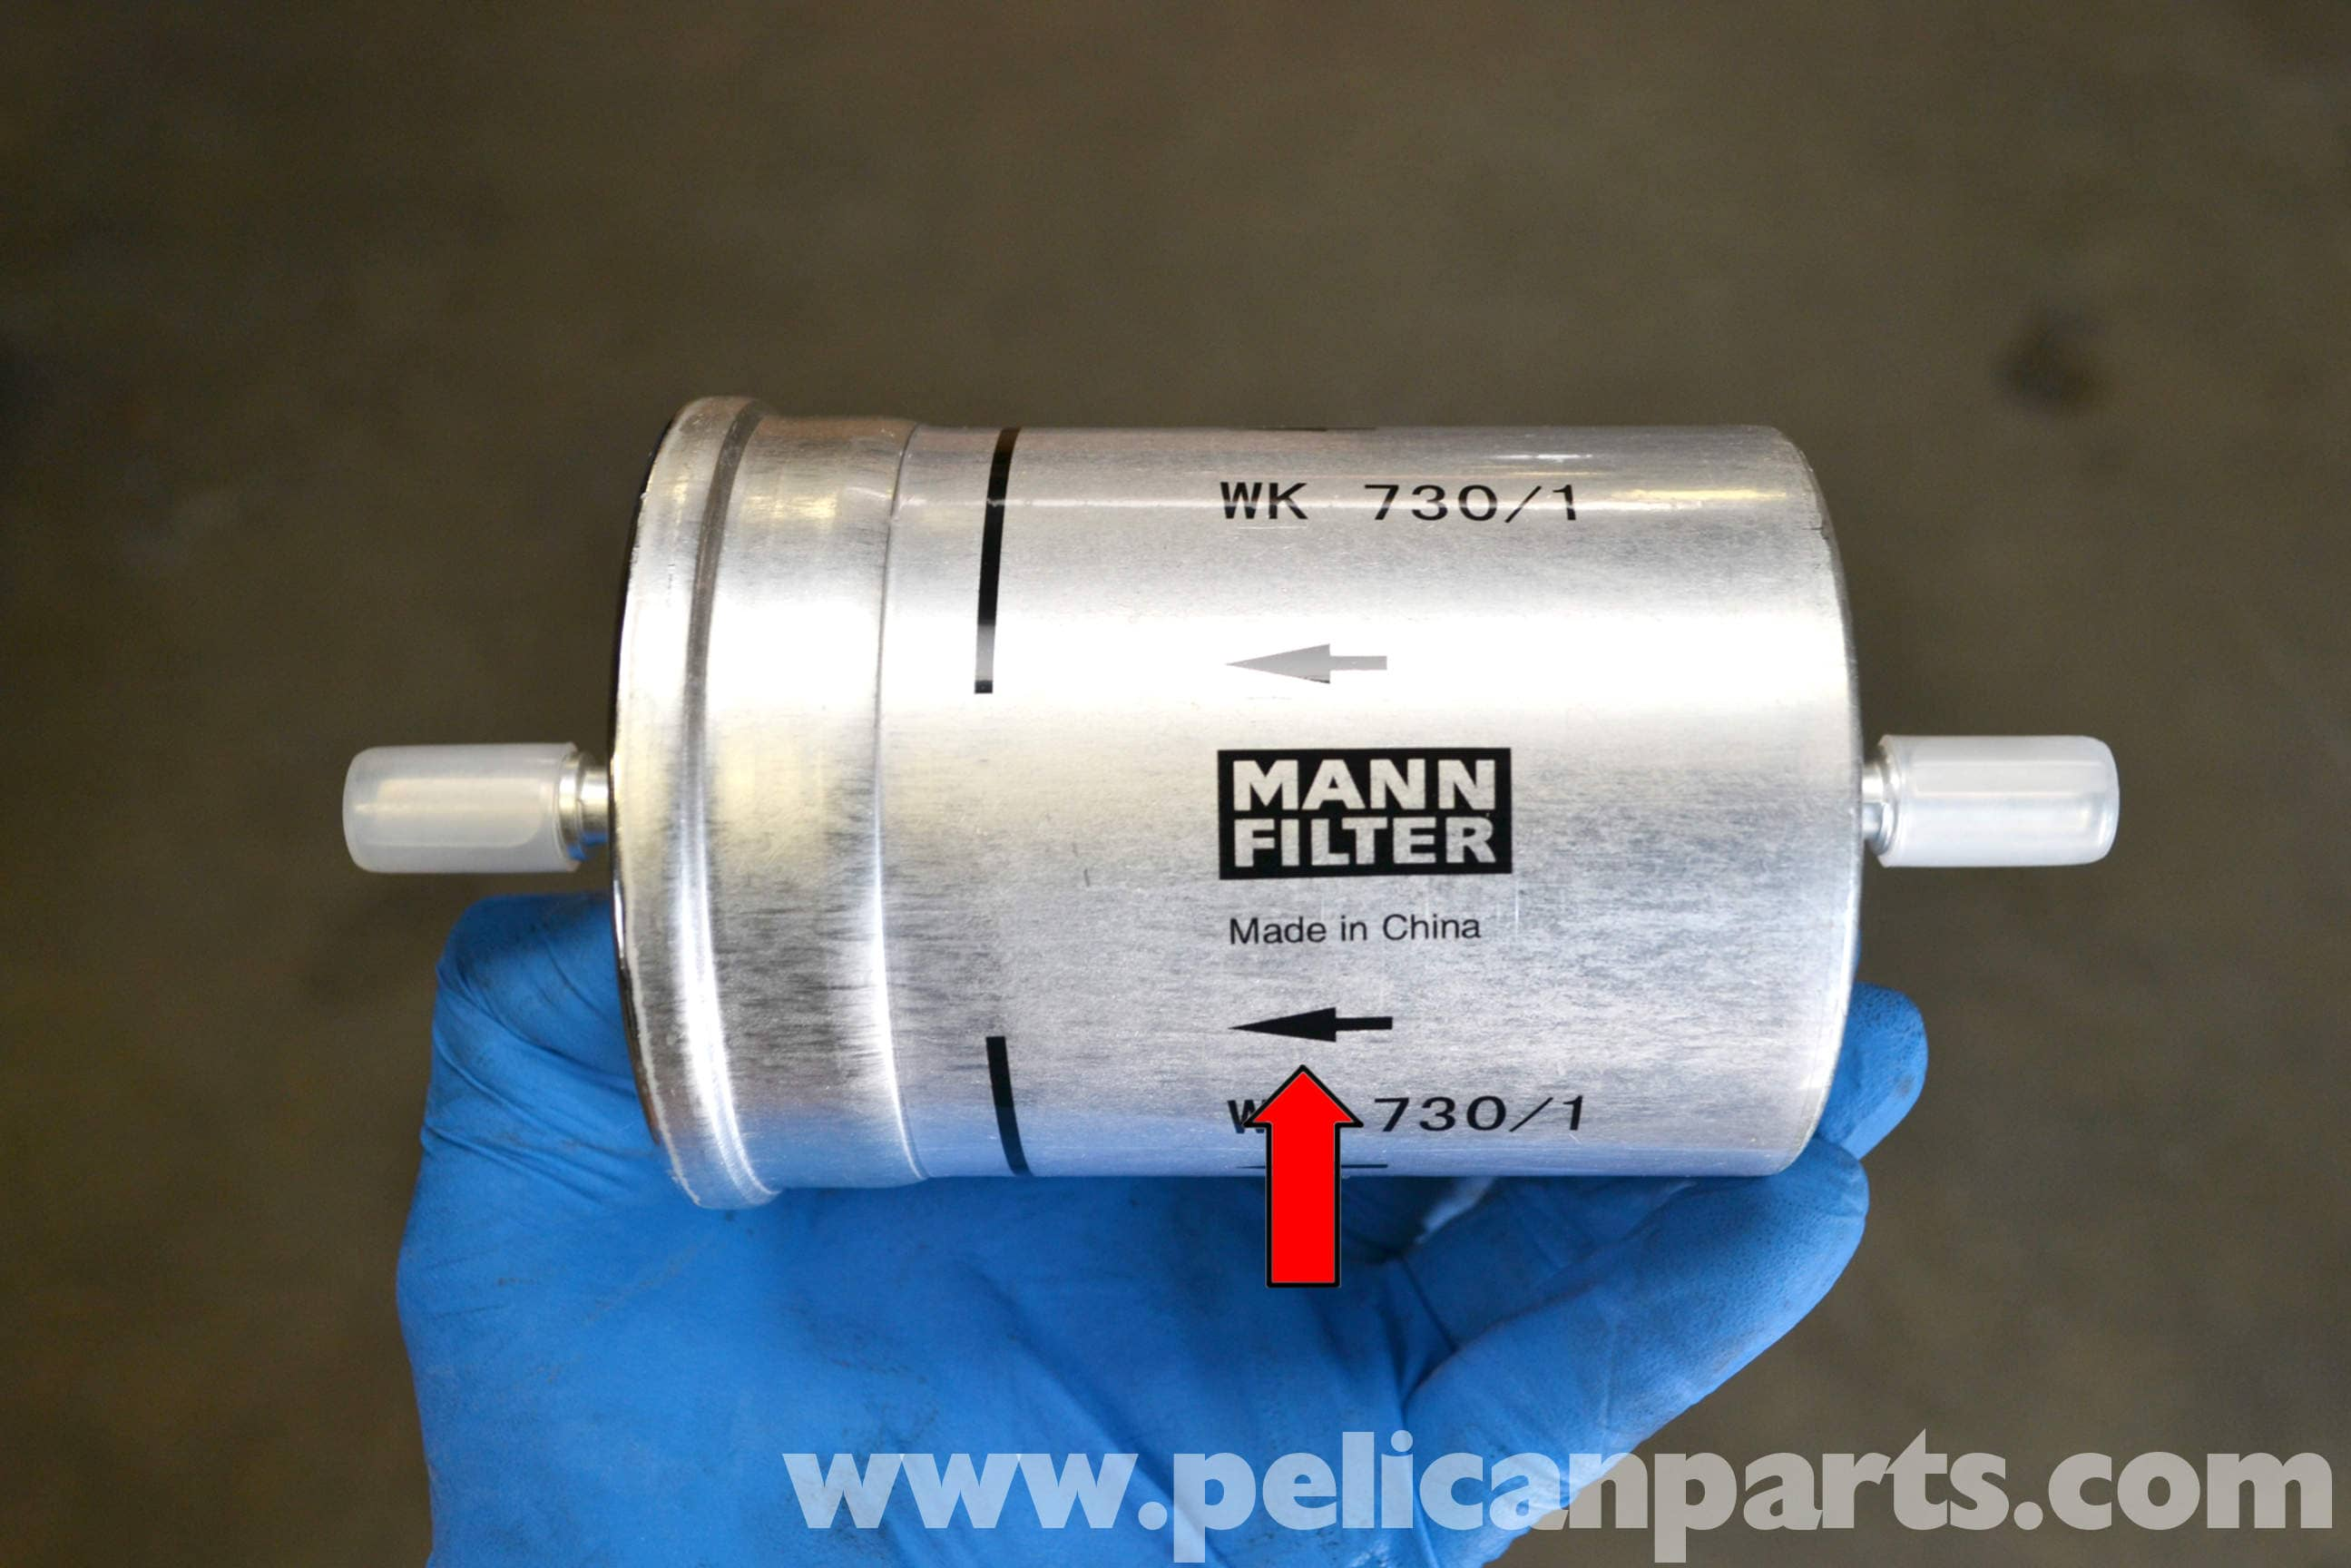 Volkswagen Golf Gti Mk Iv Fuel Filter Replacement 1999 2005 1998 Volvo 5 0 Gl Location Large Image Extra